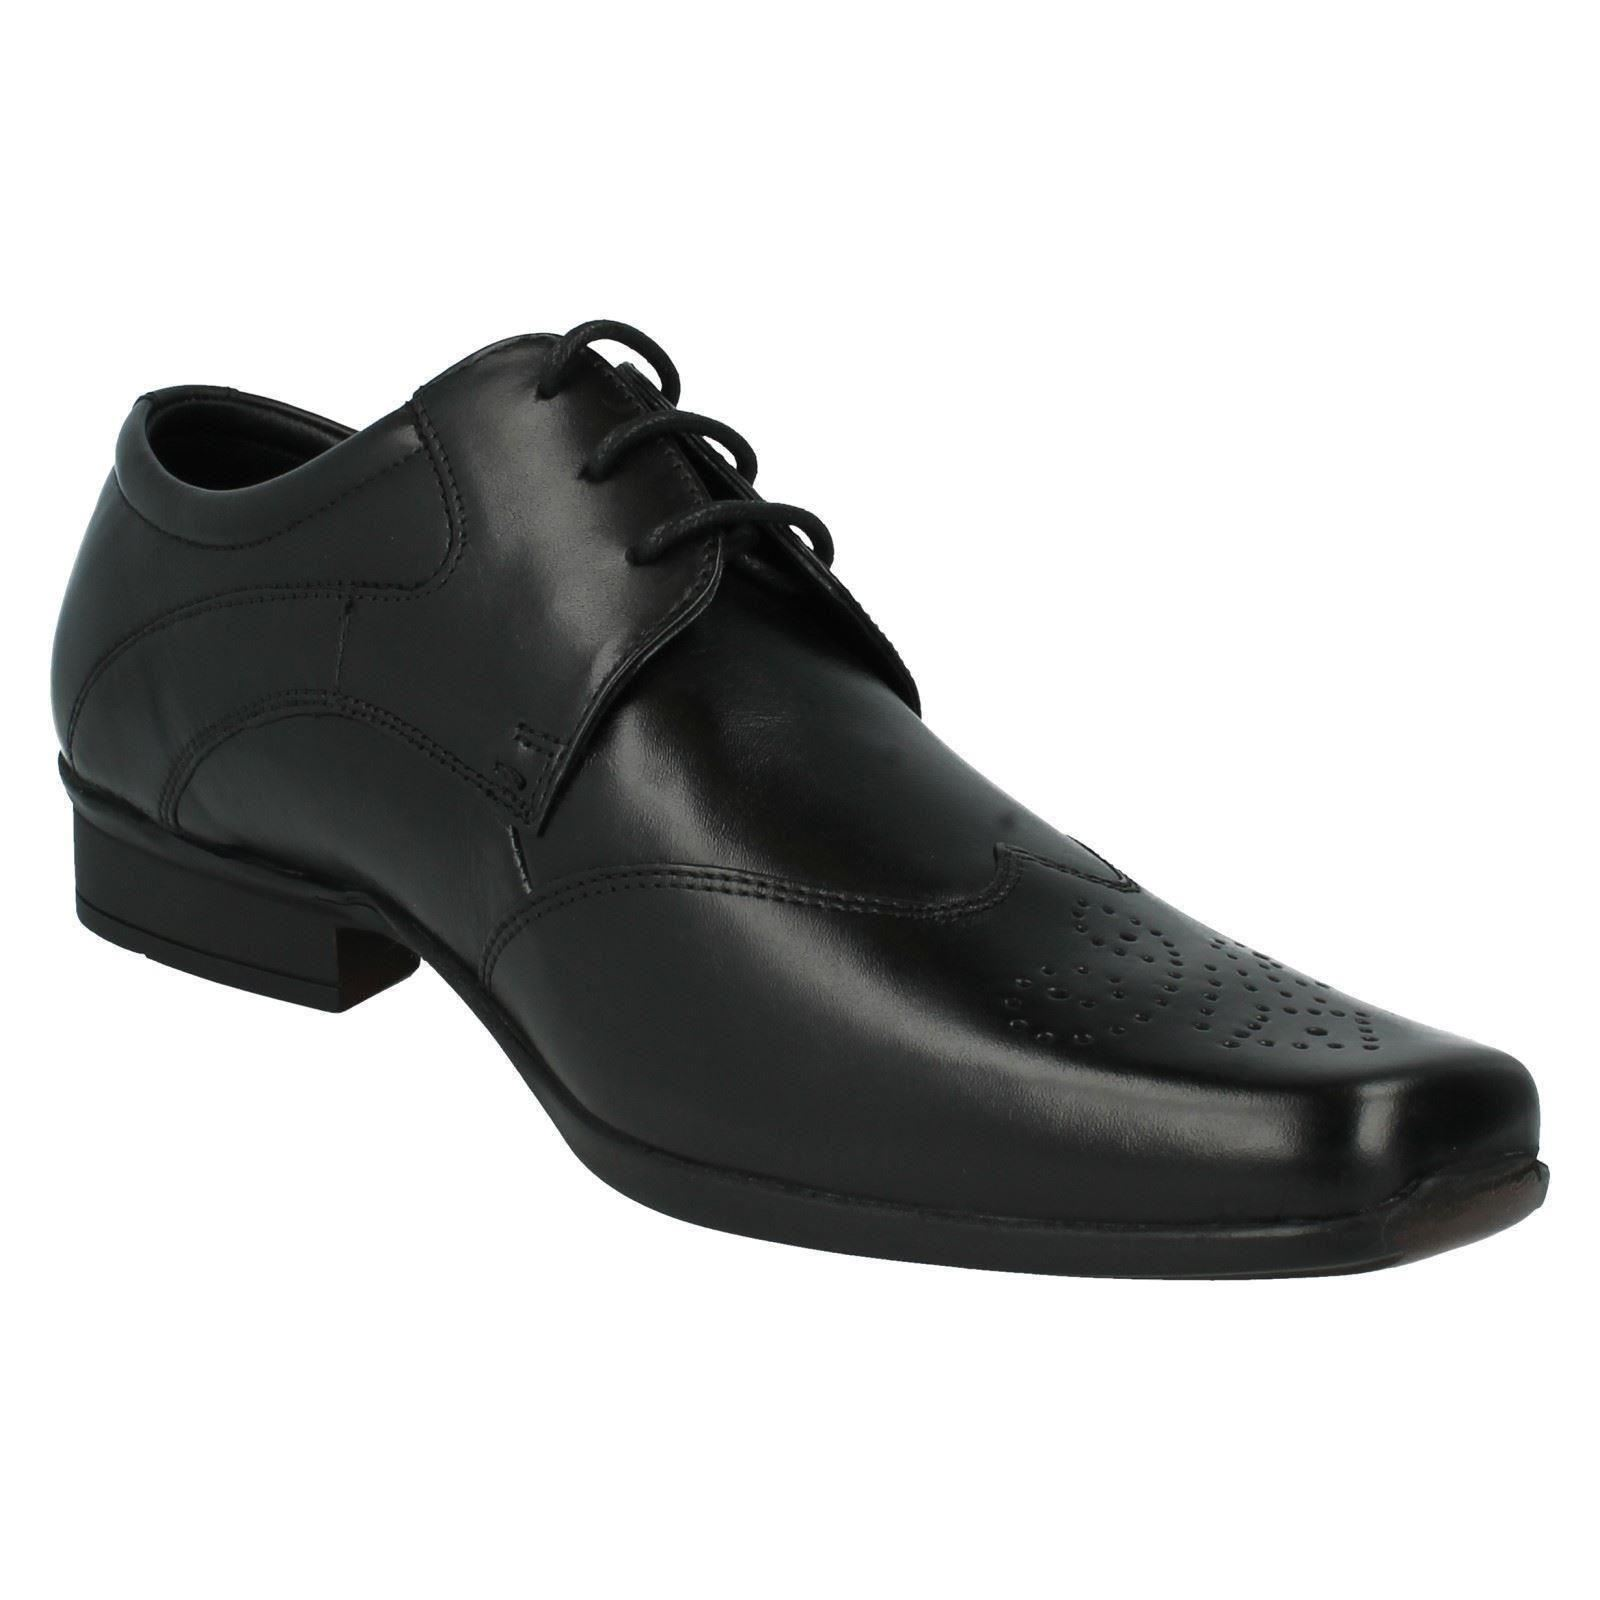 hombres Clarks Formal Formal Formal Zapatos Style - Affix Moscow 3ca11e